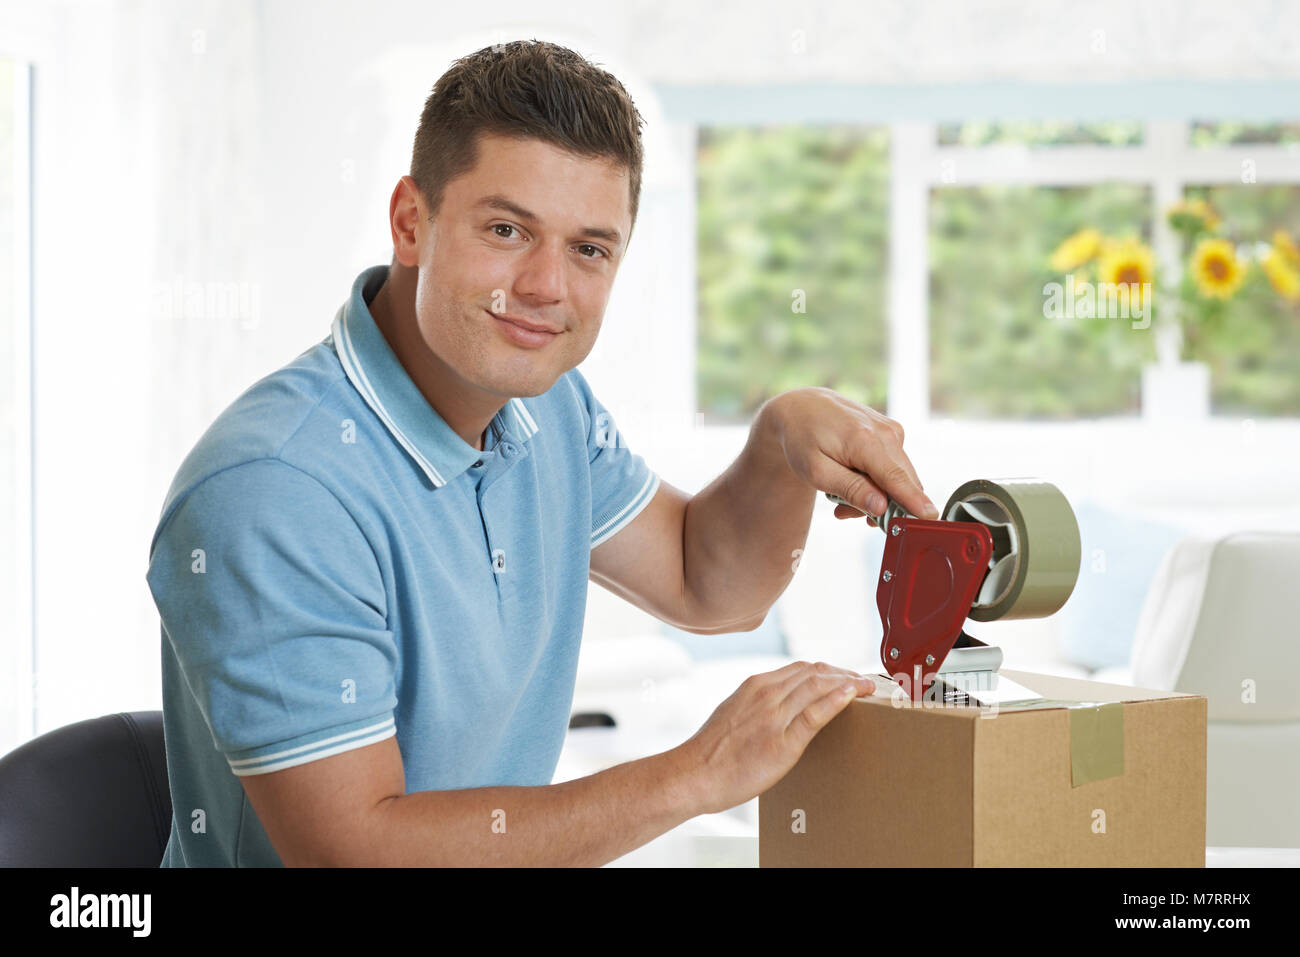 Portrait Of Man At Home Sealing Box For Dispatch - Stock Image